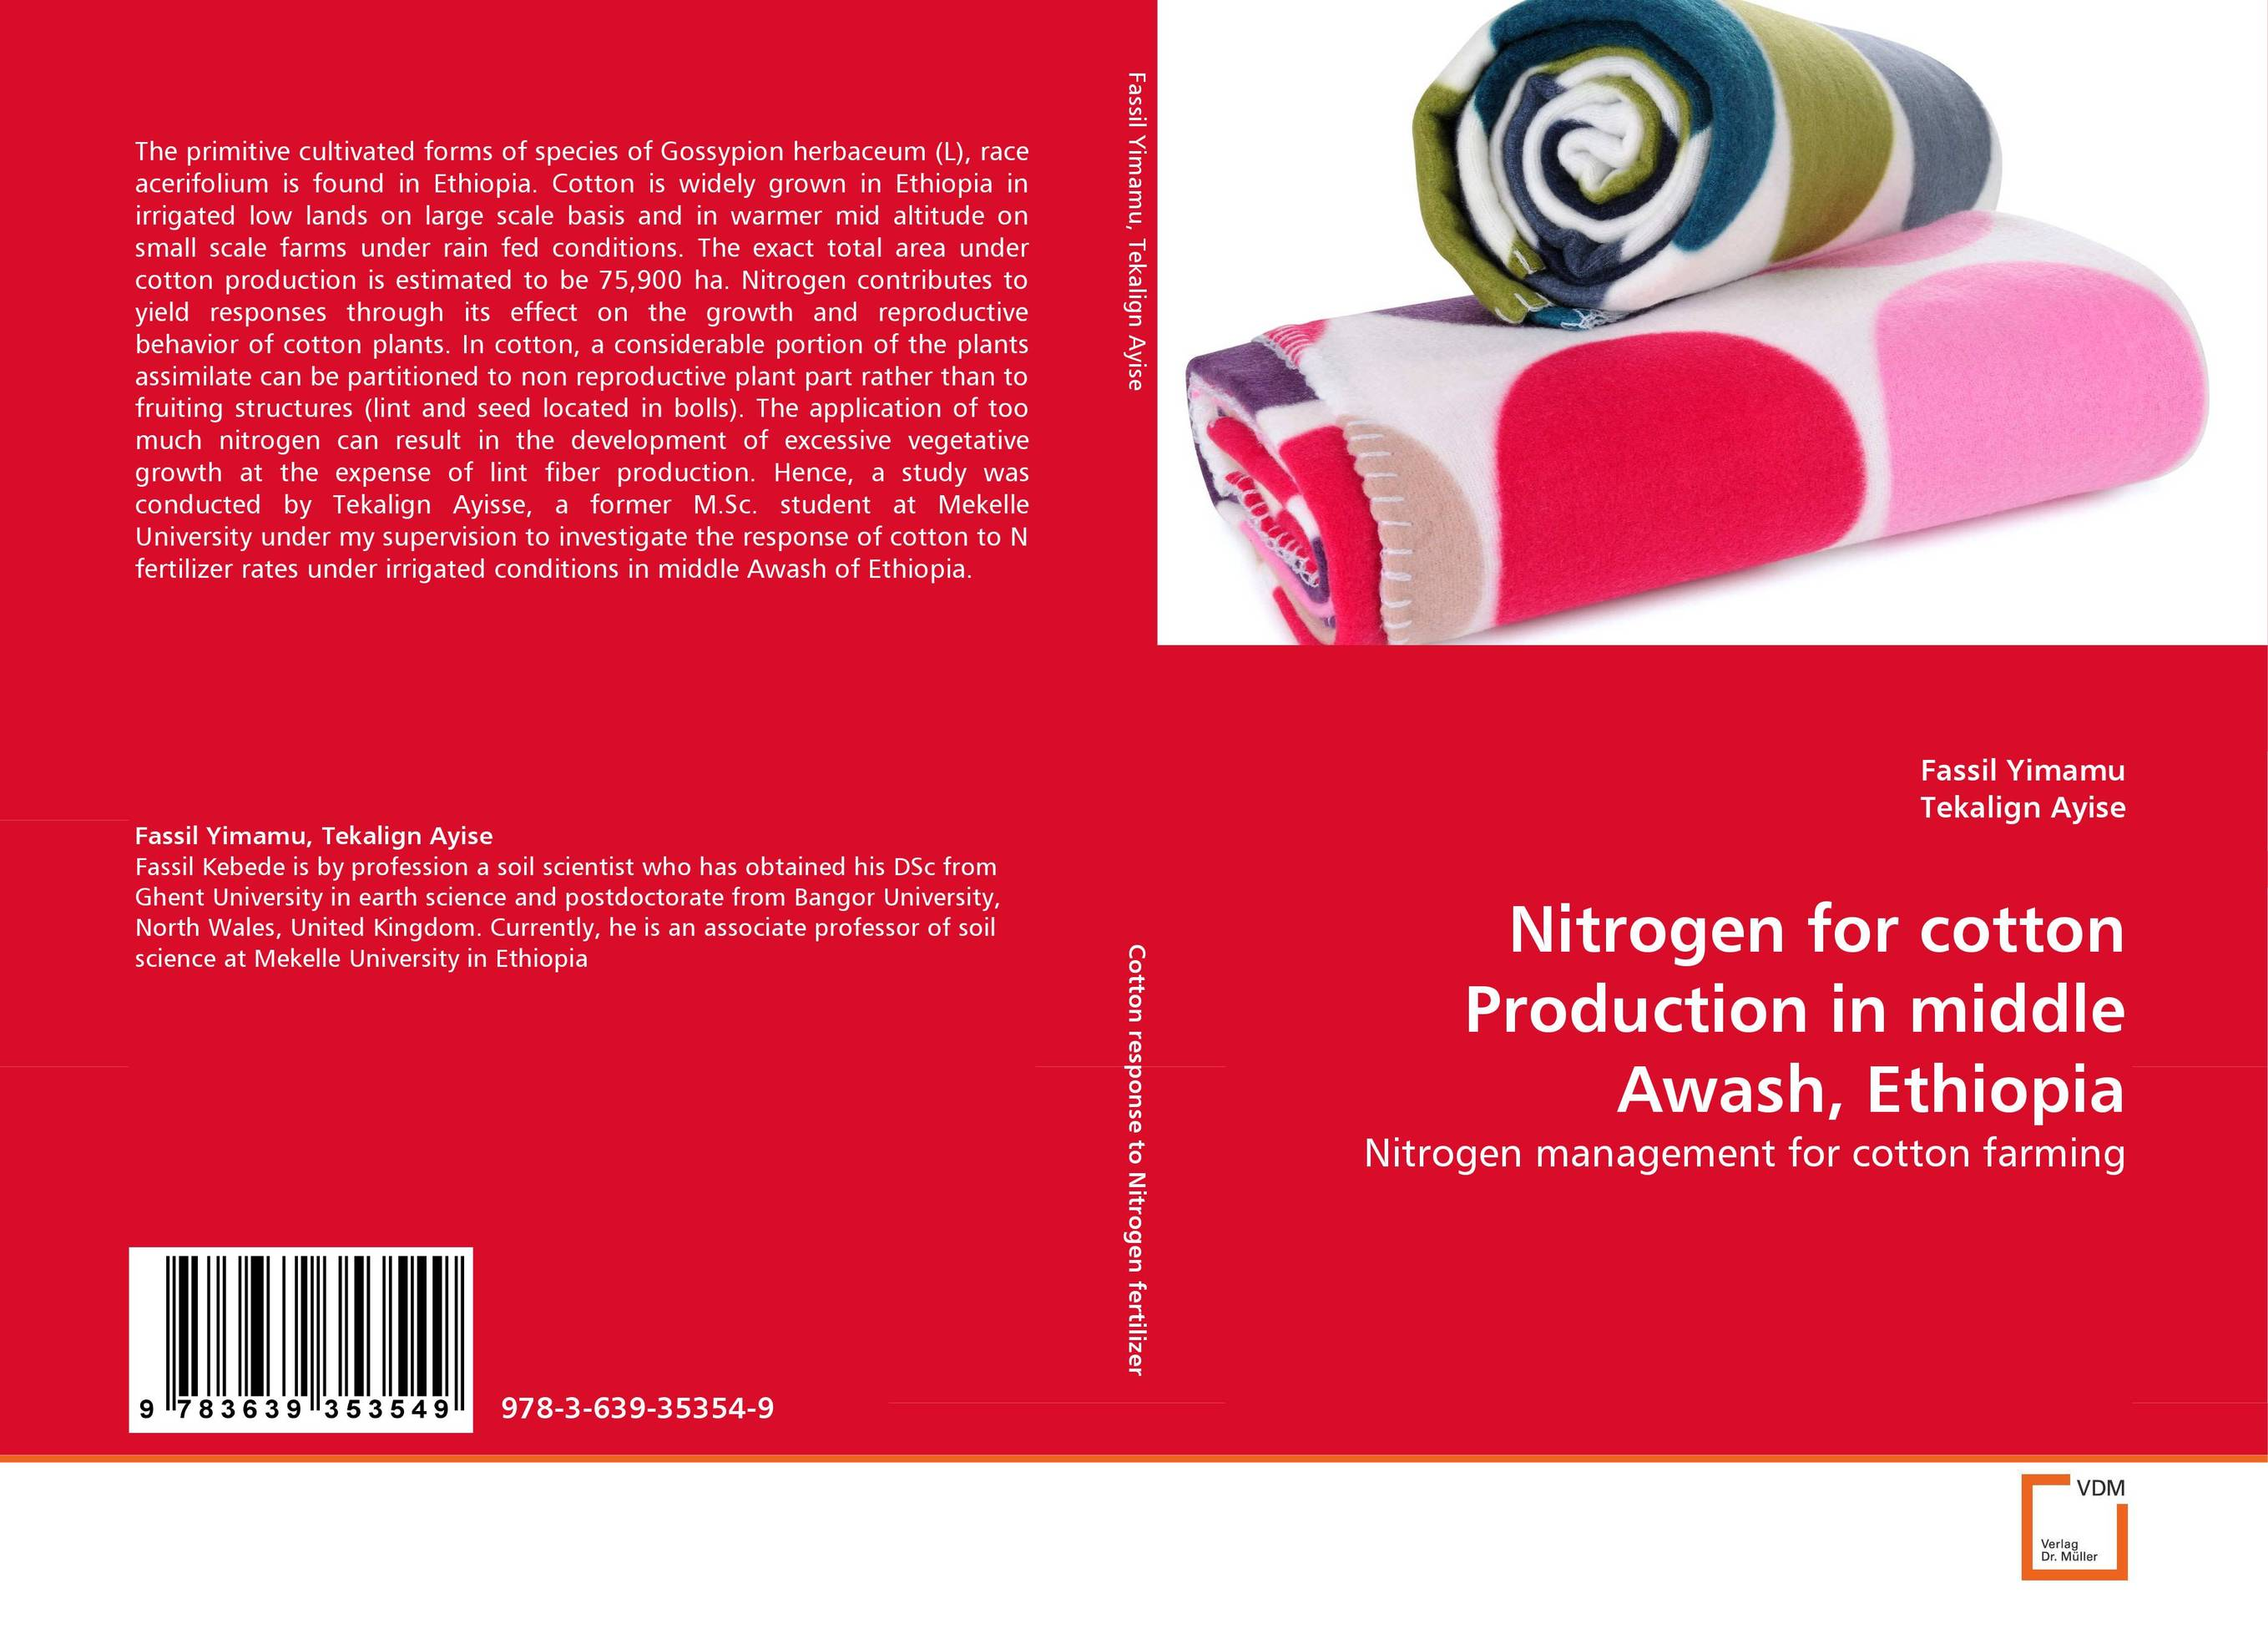 Фото Nitrogen for cotton Production in middle Awash, Ethiopia cervical cancer in amhara region in ethiopia